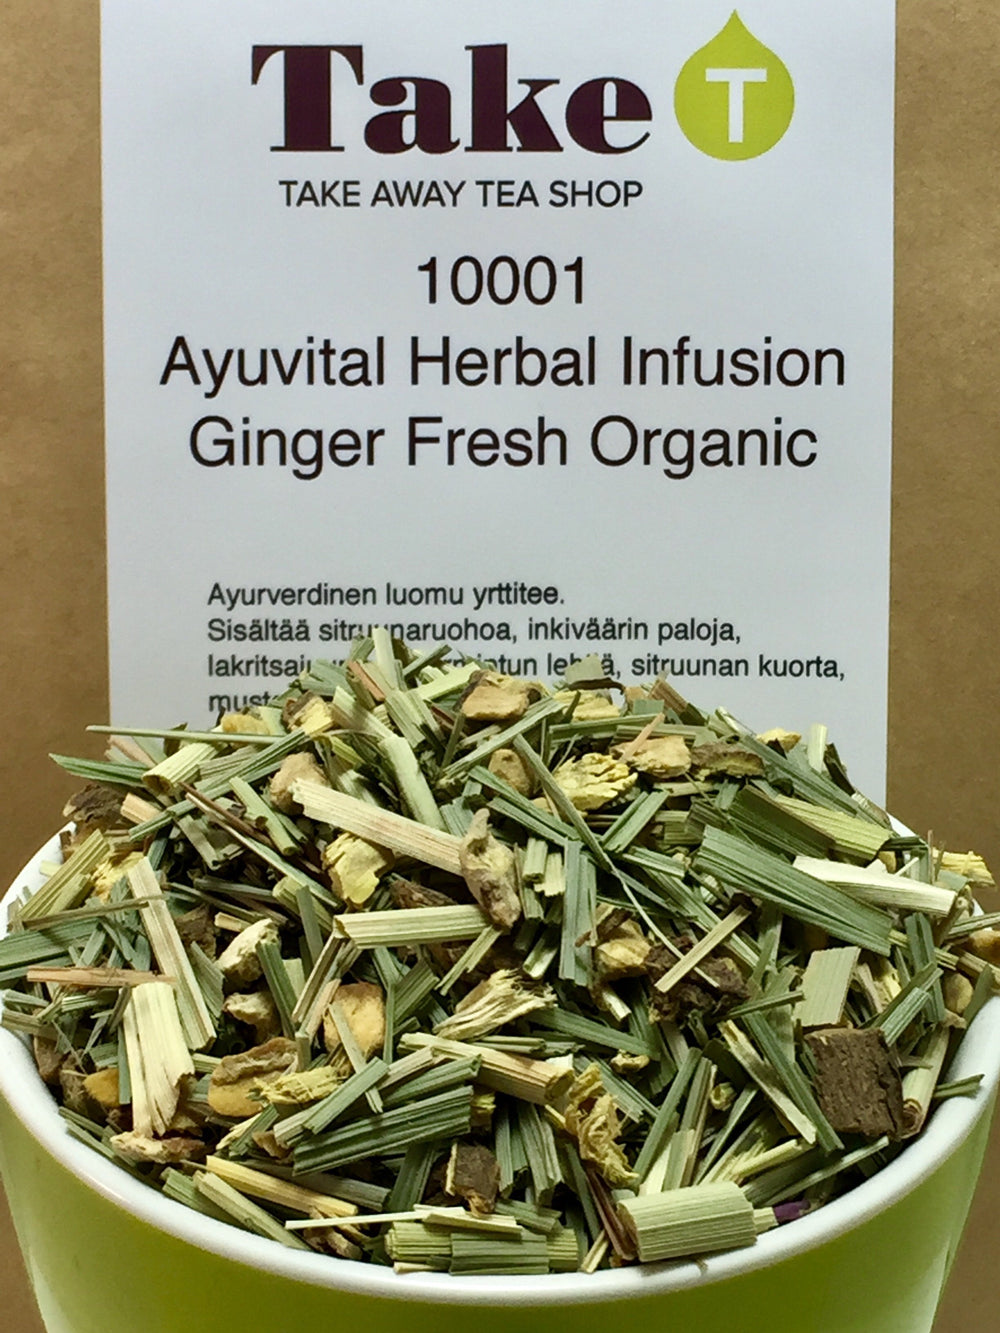 Ayuvital Herbal Infusion Ginger Fresh Organic